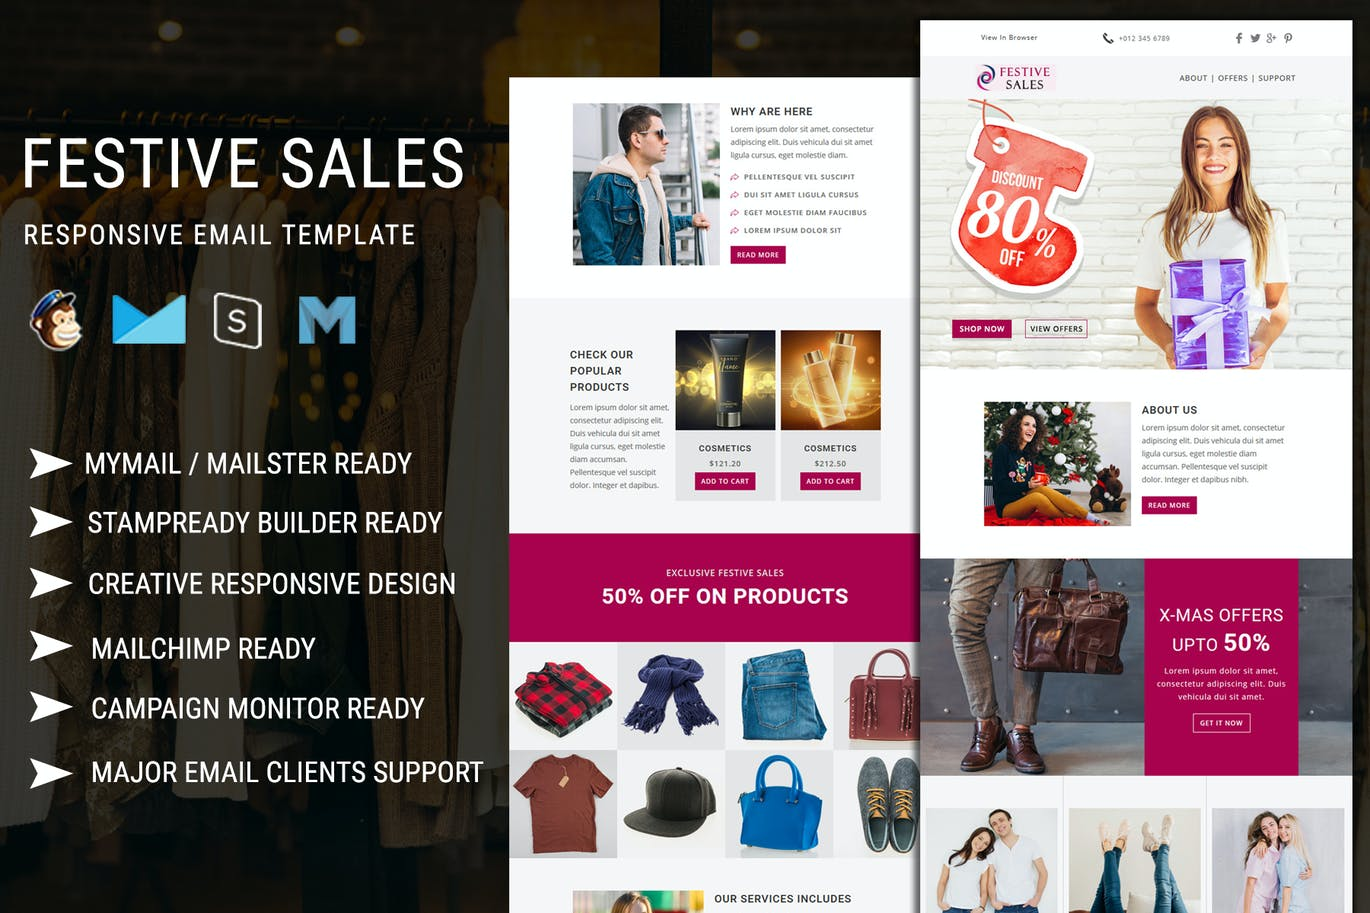 Festive Sales - Responsive Email Template